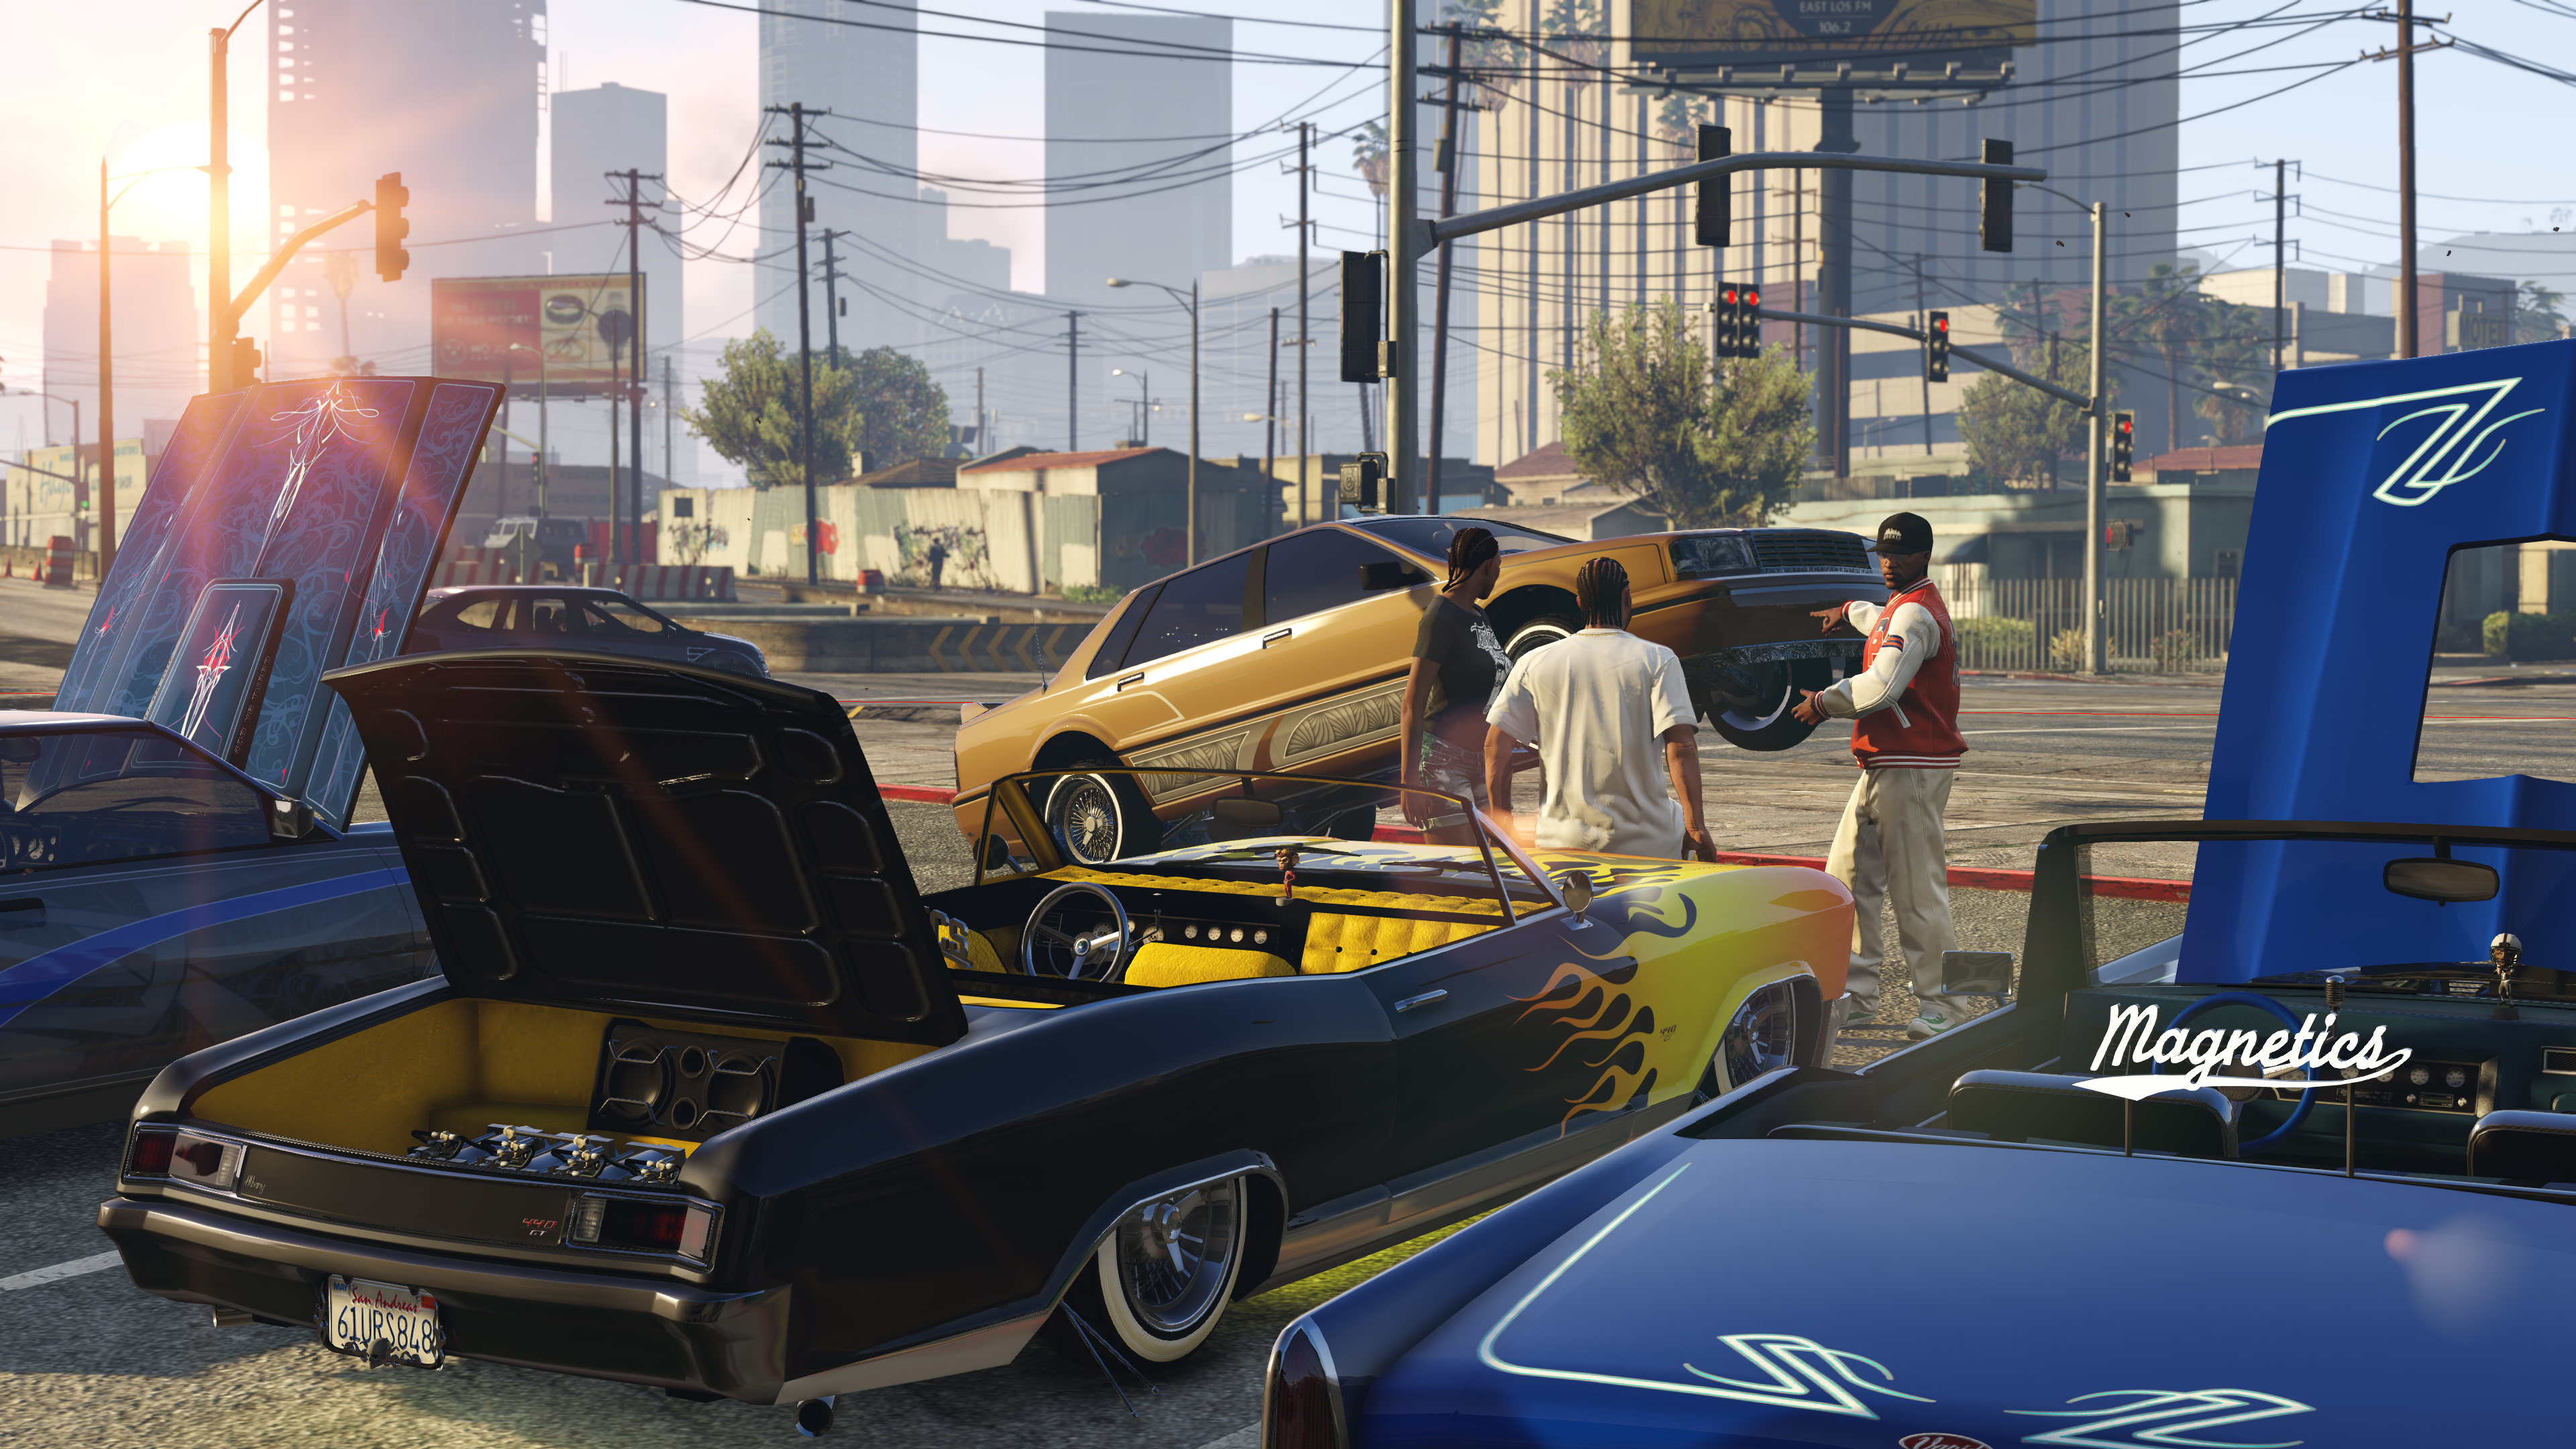 southside Car Club avatar